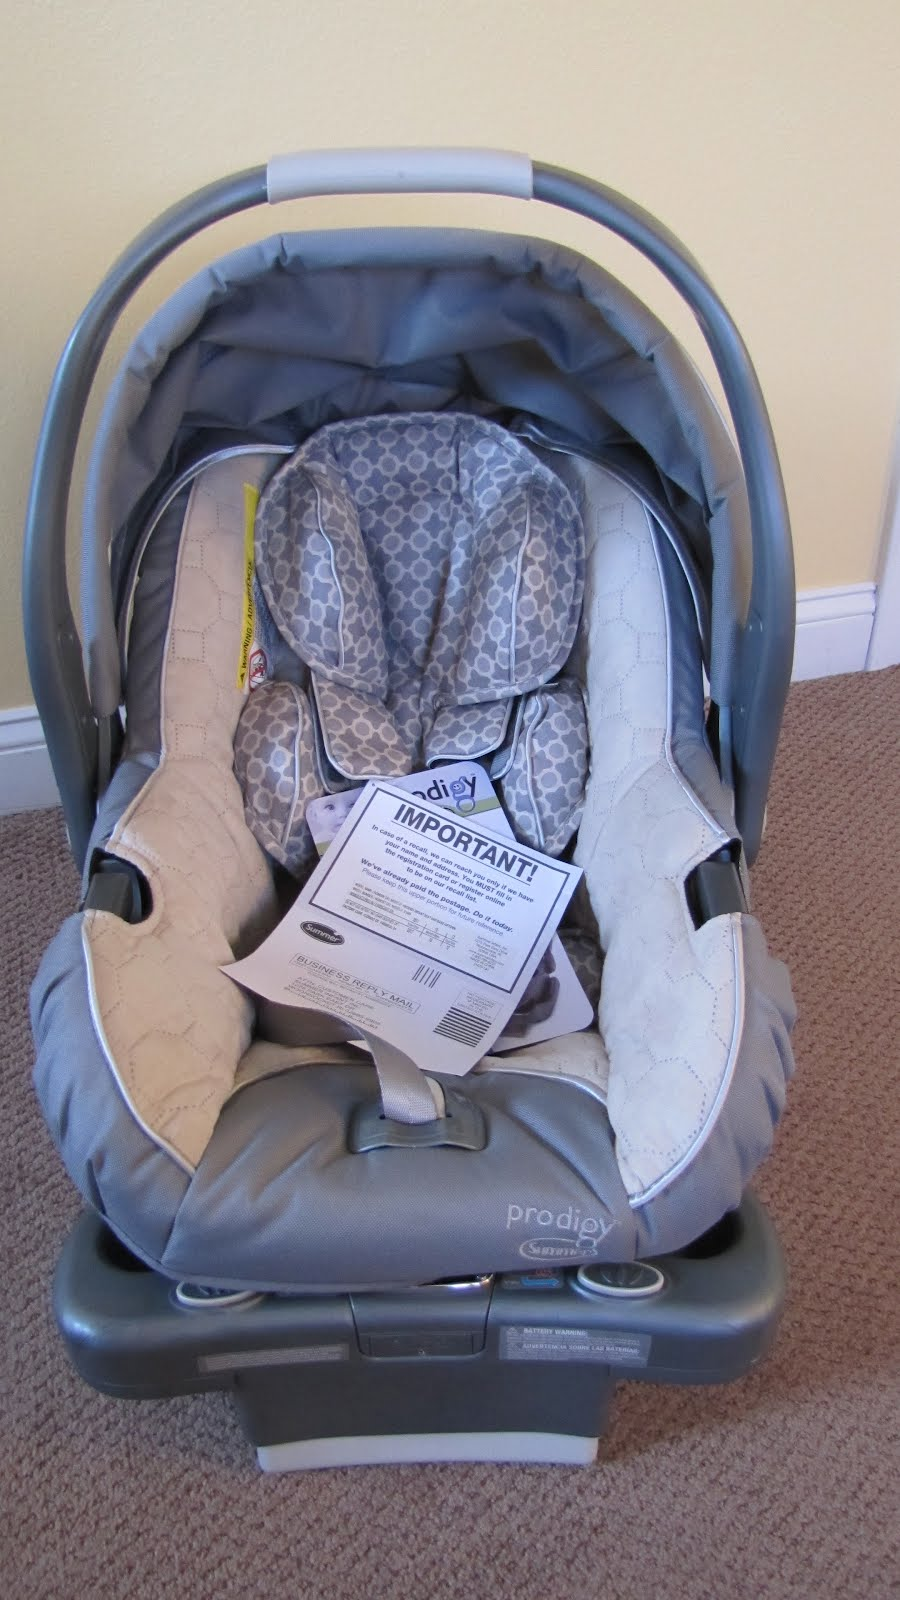 Summer Infant Prodigy Car Seat Giveaway